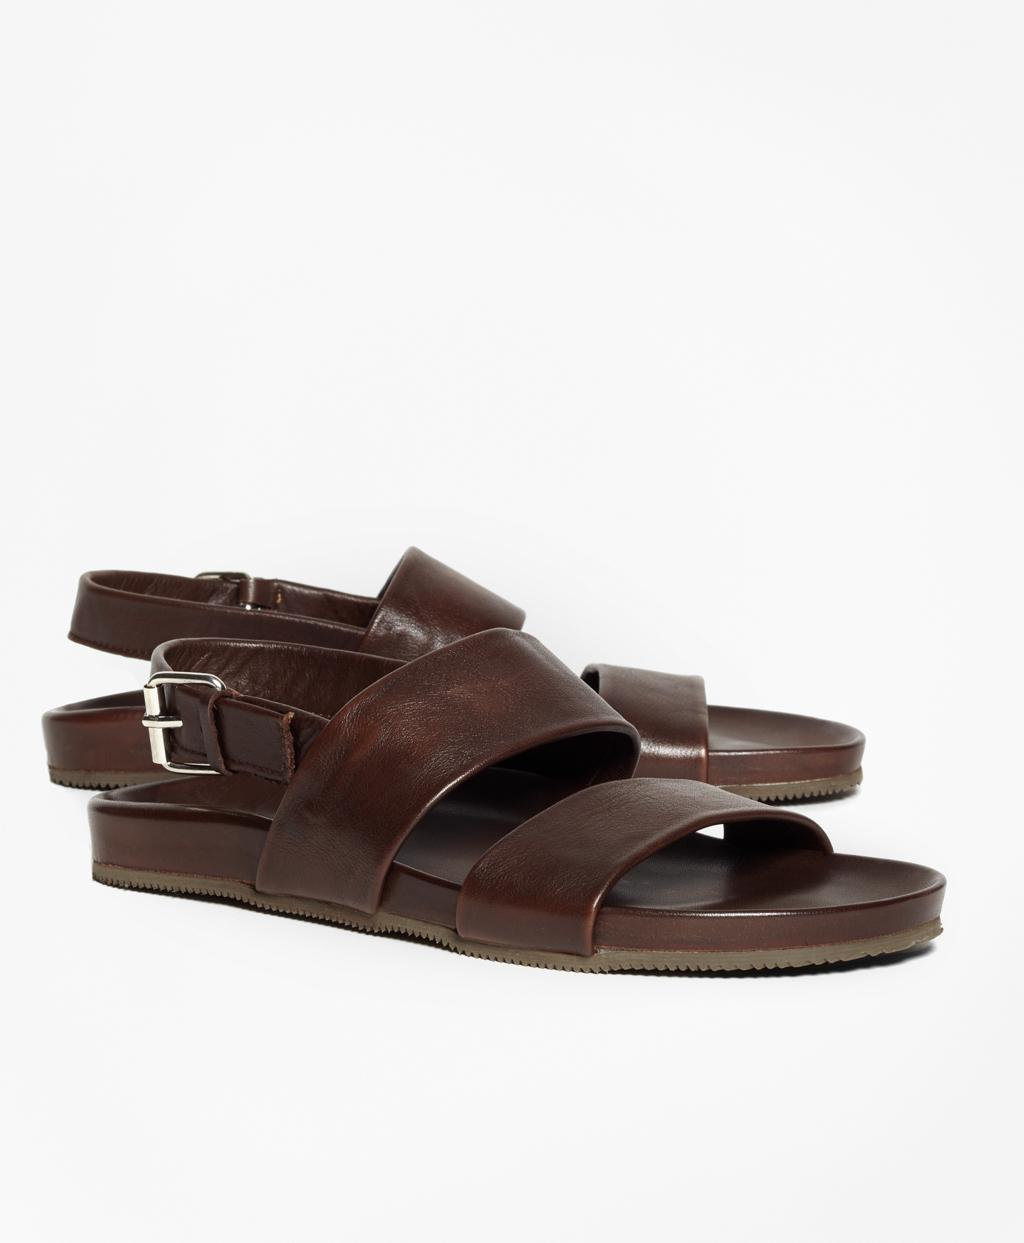 48f711eaa Lyst - Brooks Brothers Double Strap Leather Sandals in Brown for Men